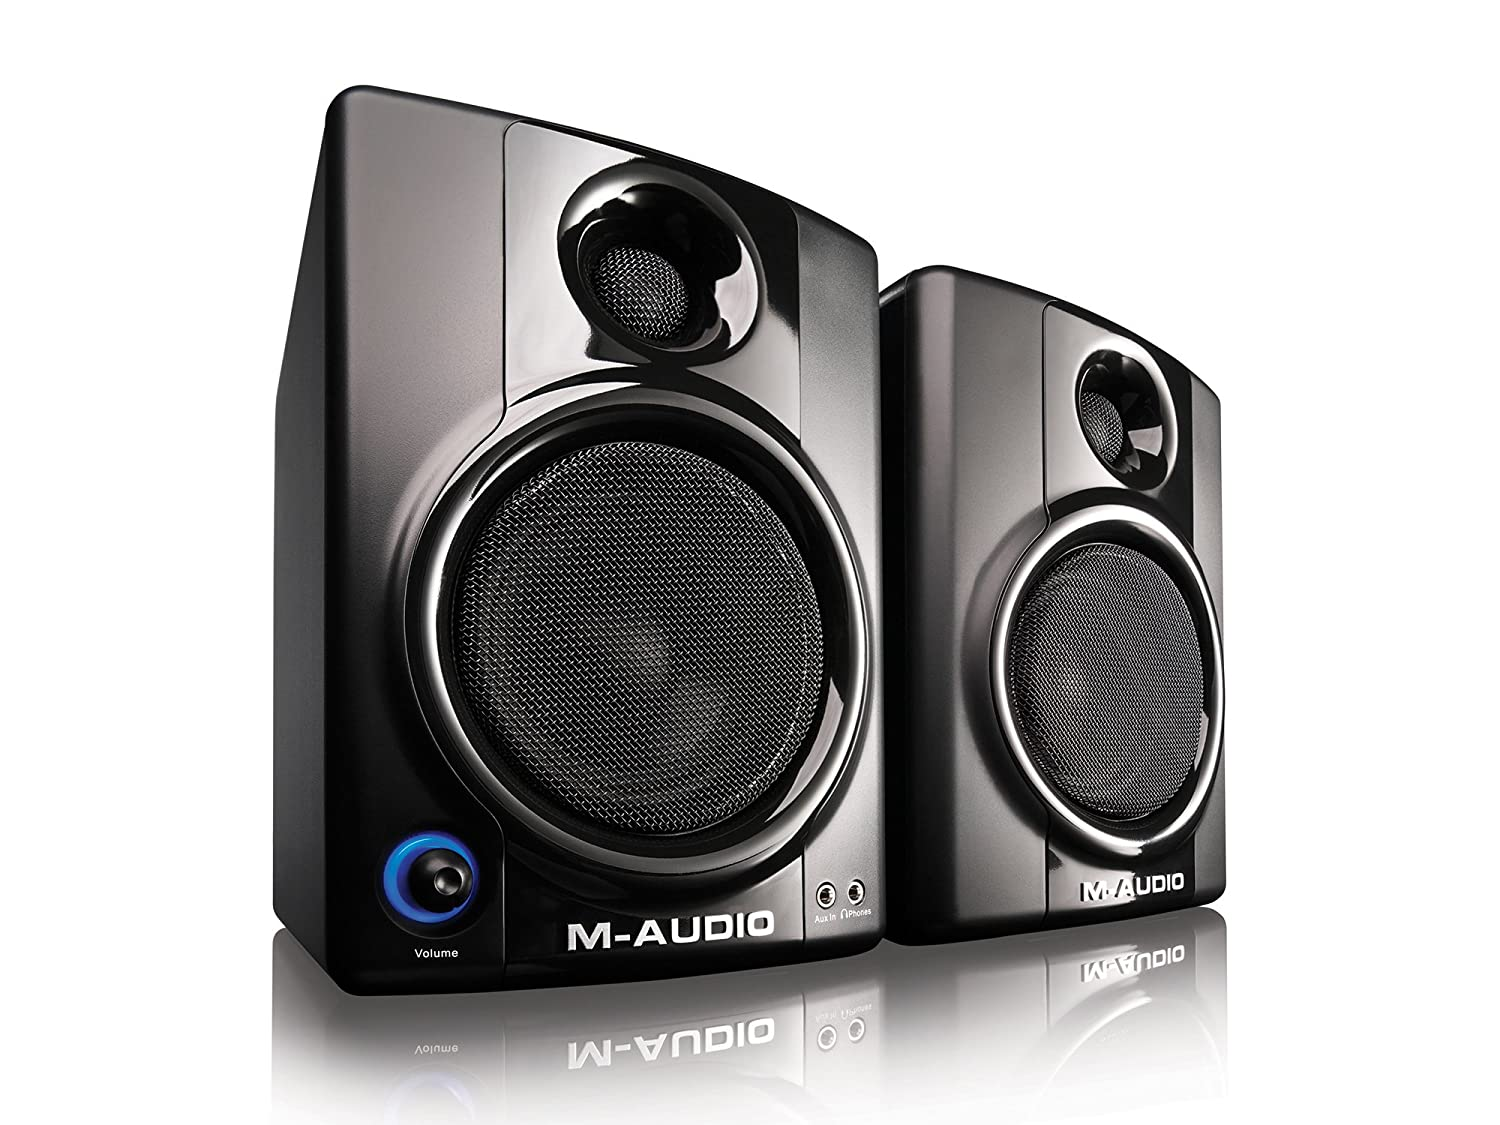 Loa đa năng M-Audio Studiophile AV40 Powered Monitor Speakers